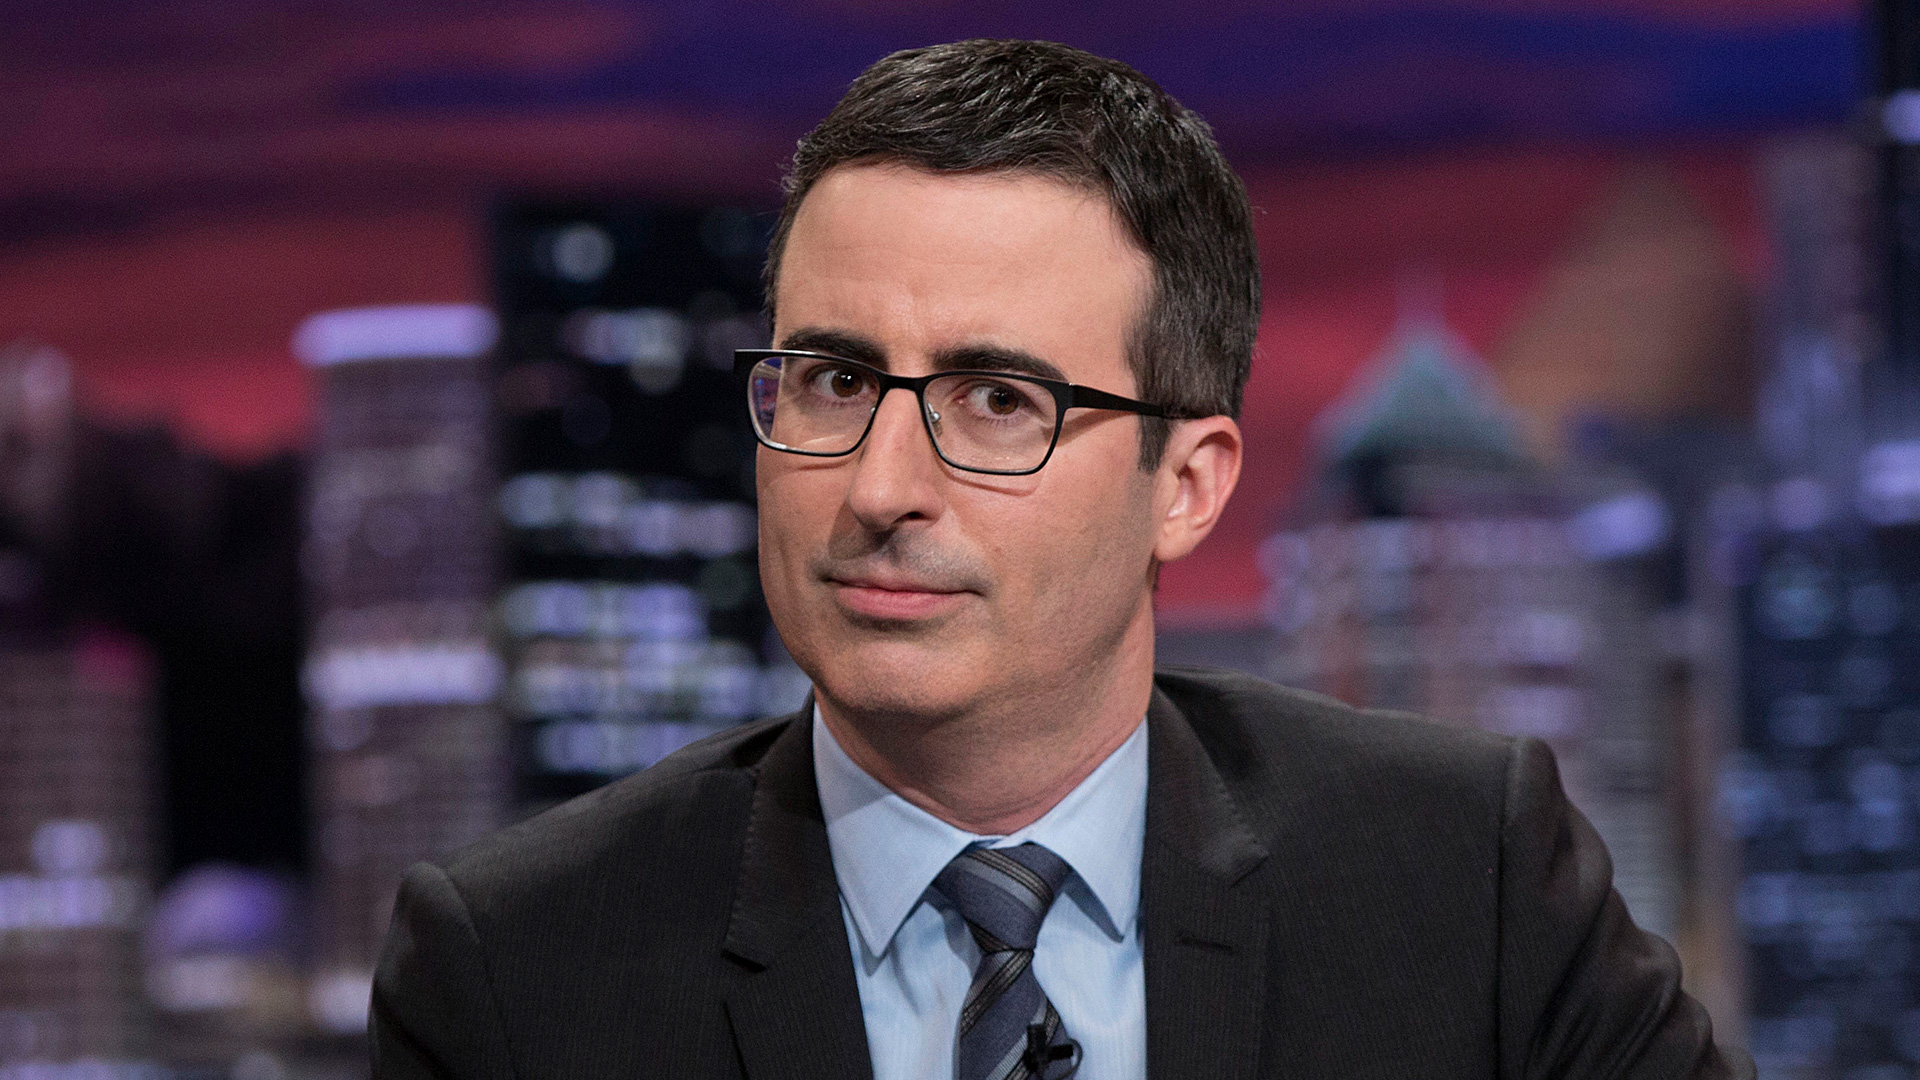 Watch: John Oliver Wonders Why Trump Is So Nice To Russia